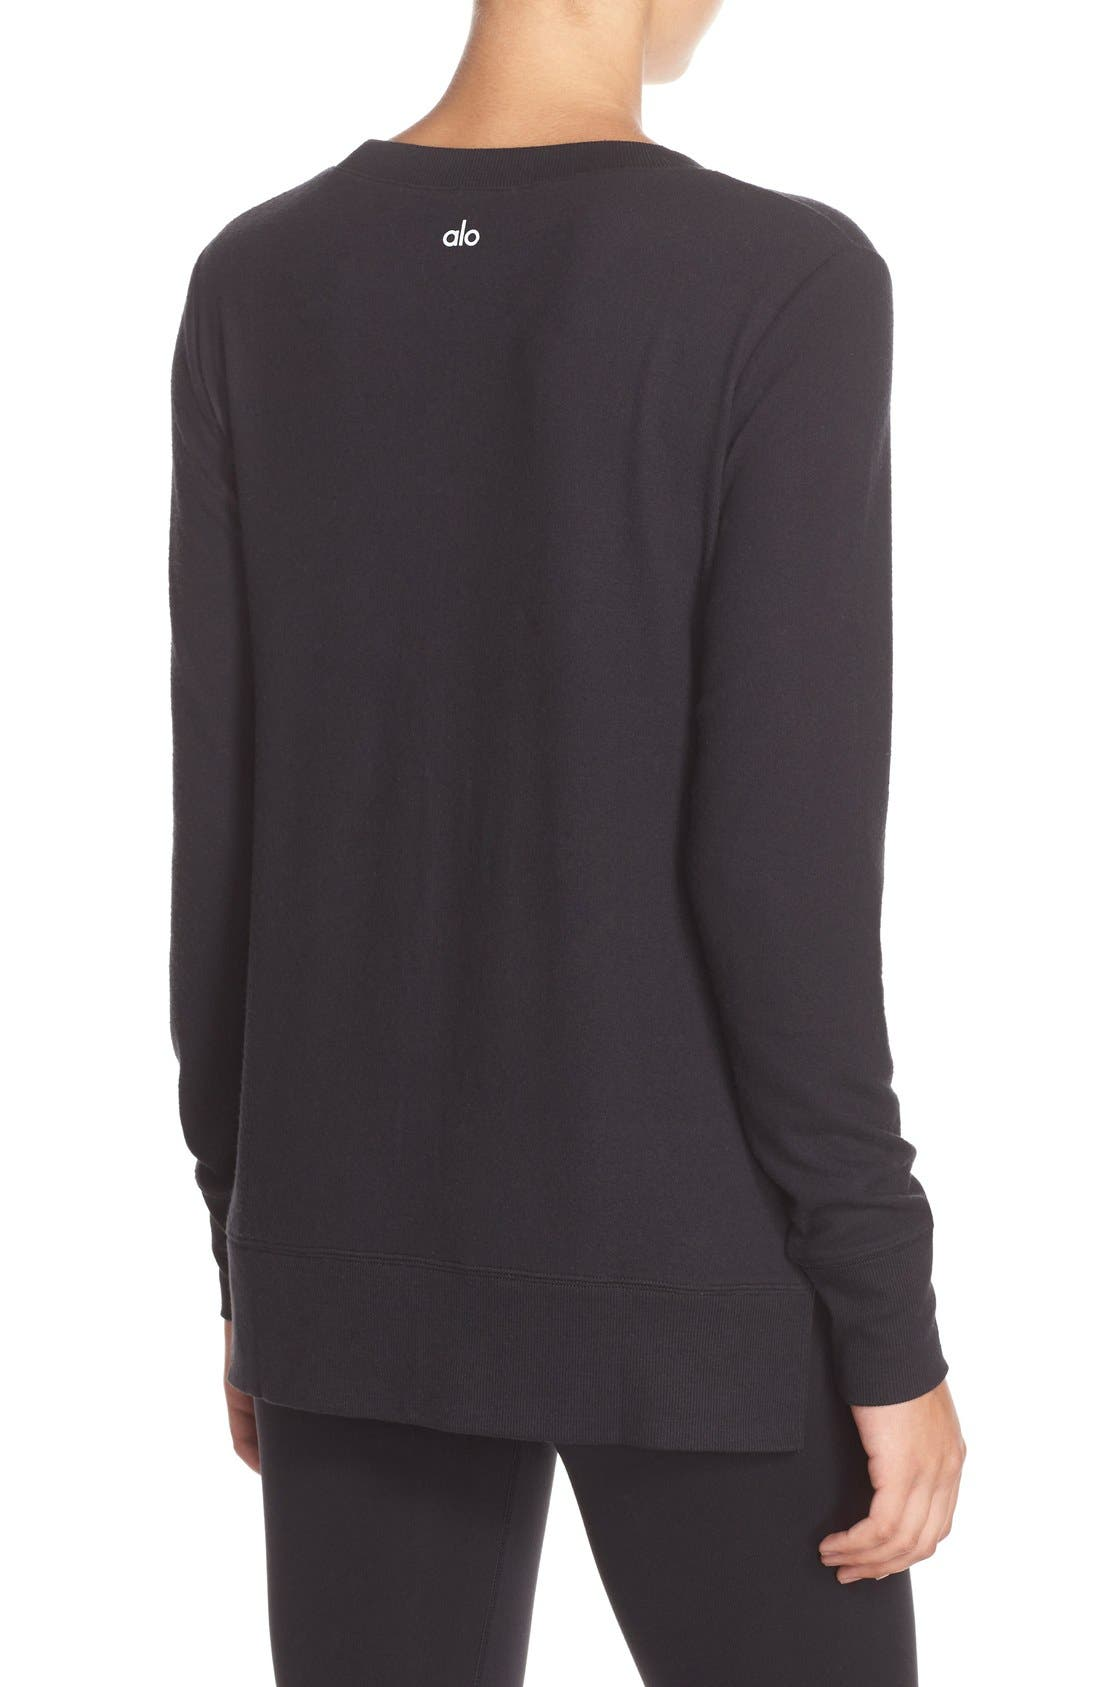 ALO, 'Glimpse' Long Sleeve Top, Alternate thumbnail 5, color, BLACK